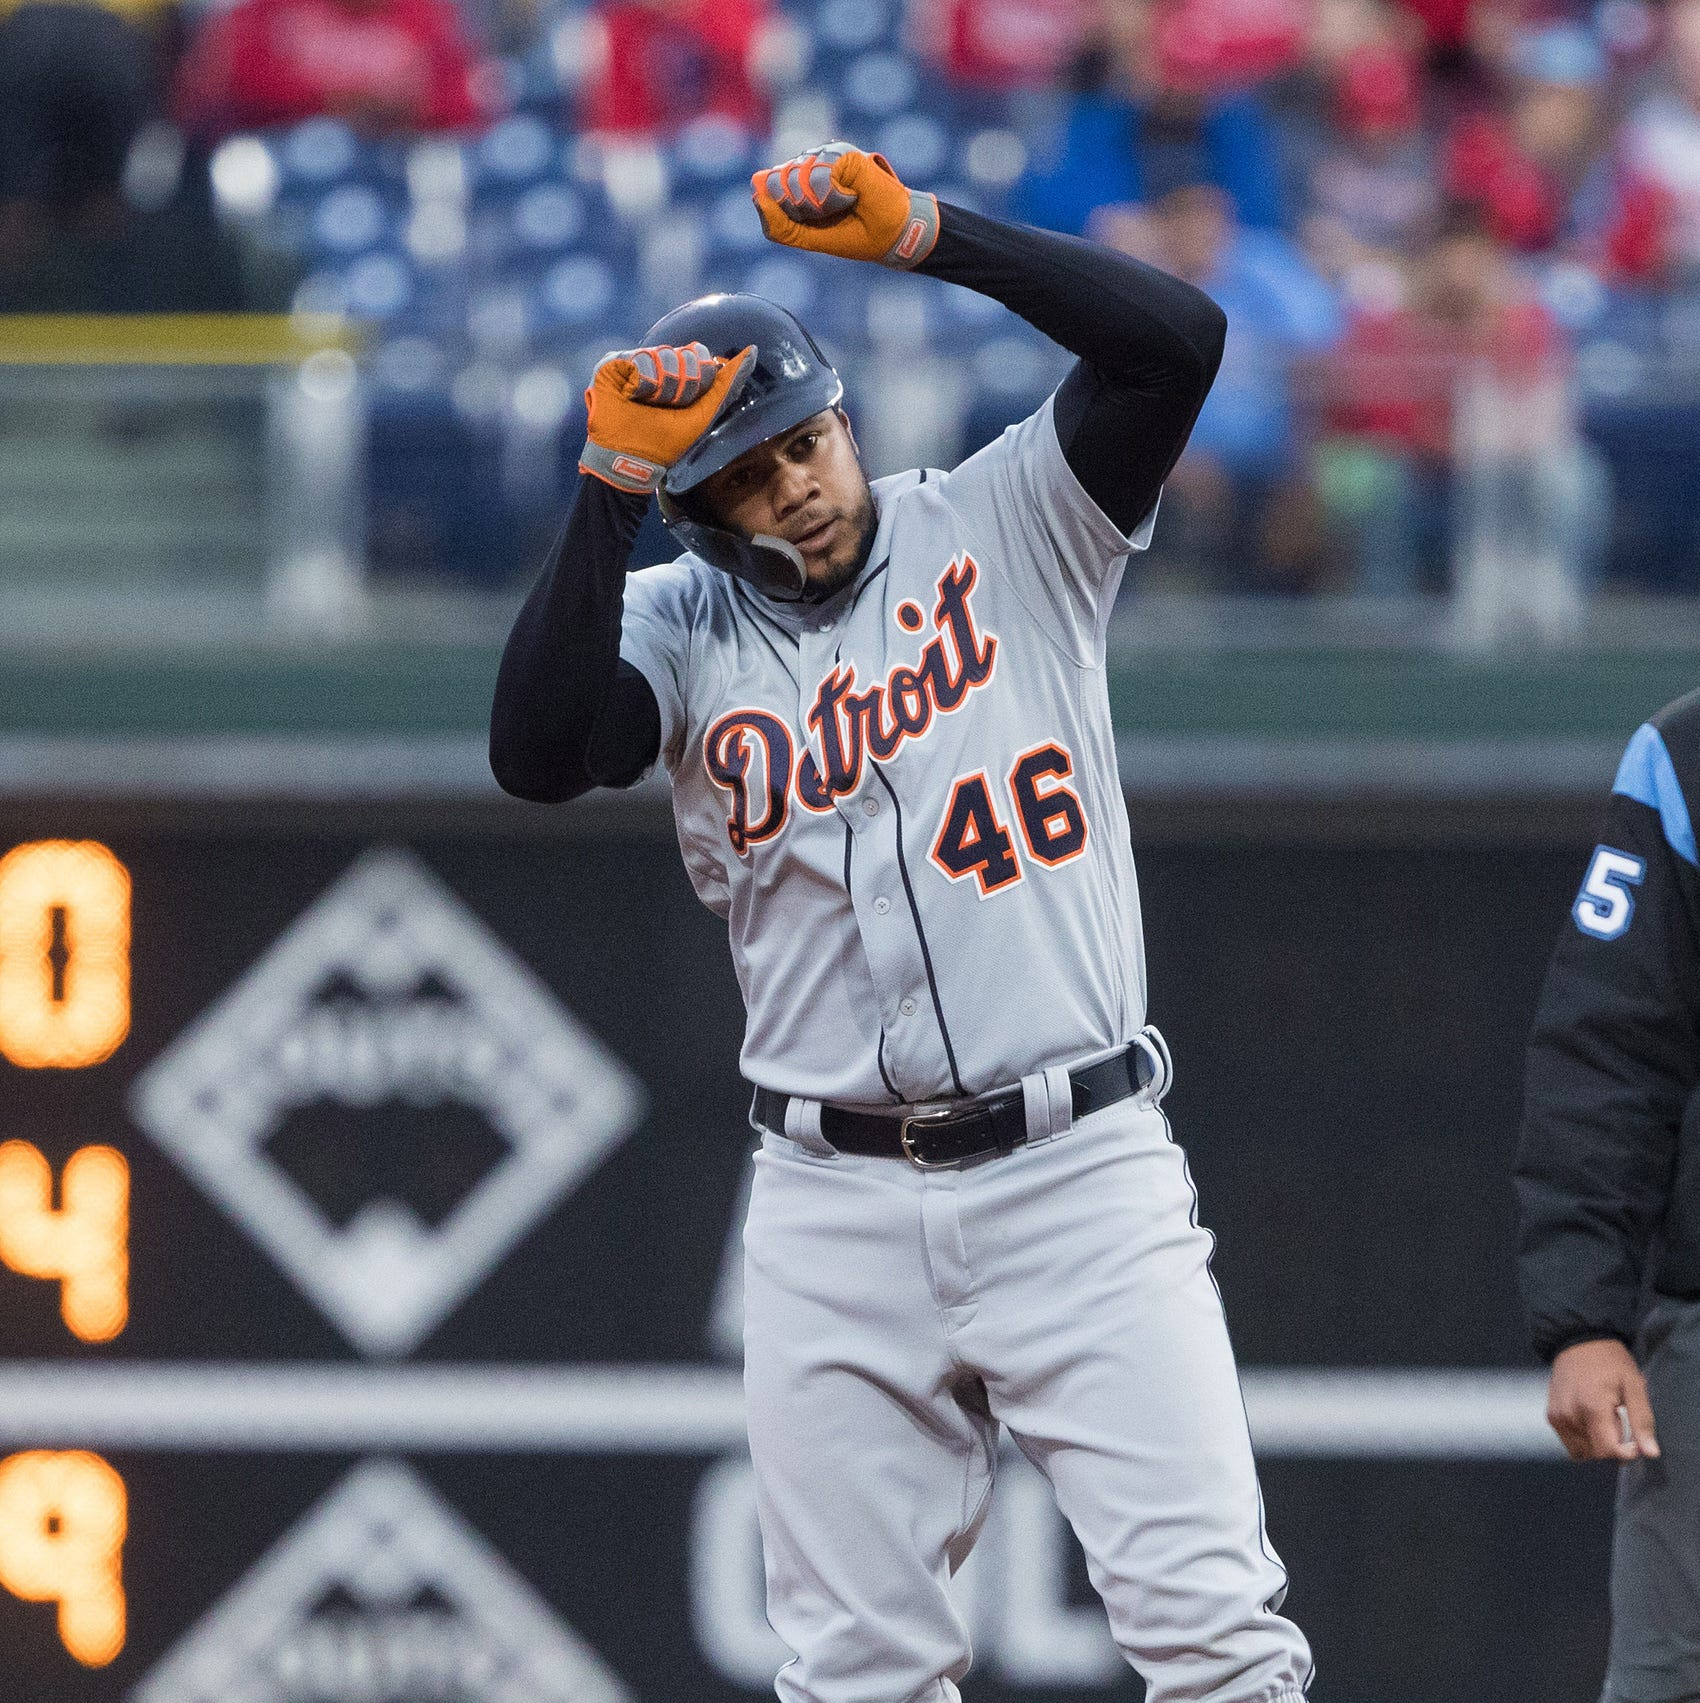 Detroit Tigers vs. Kansas City Royals: How to watch series opener at Comerica